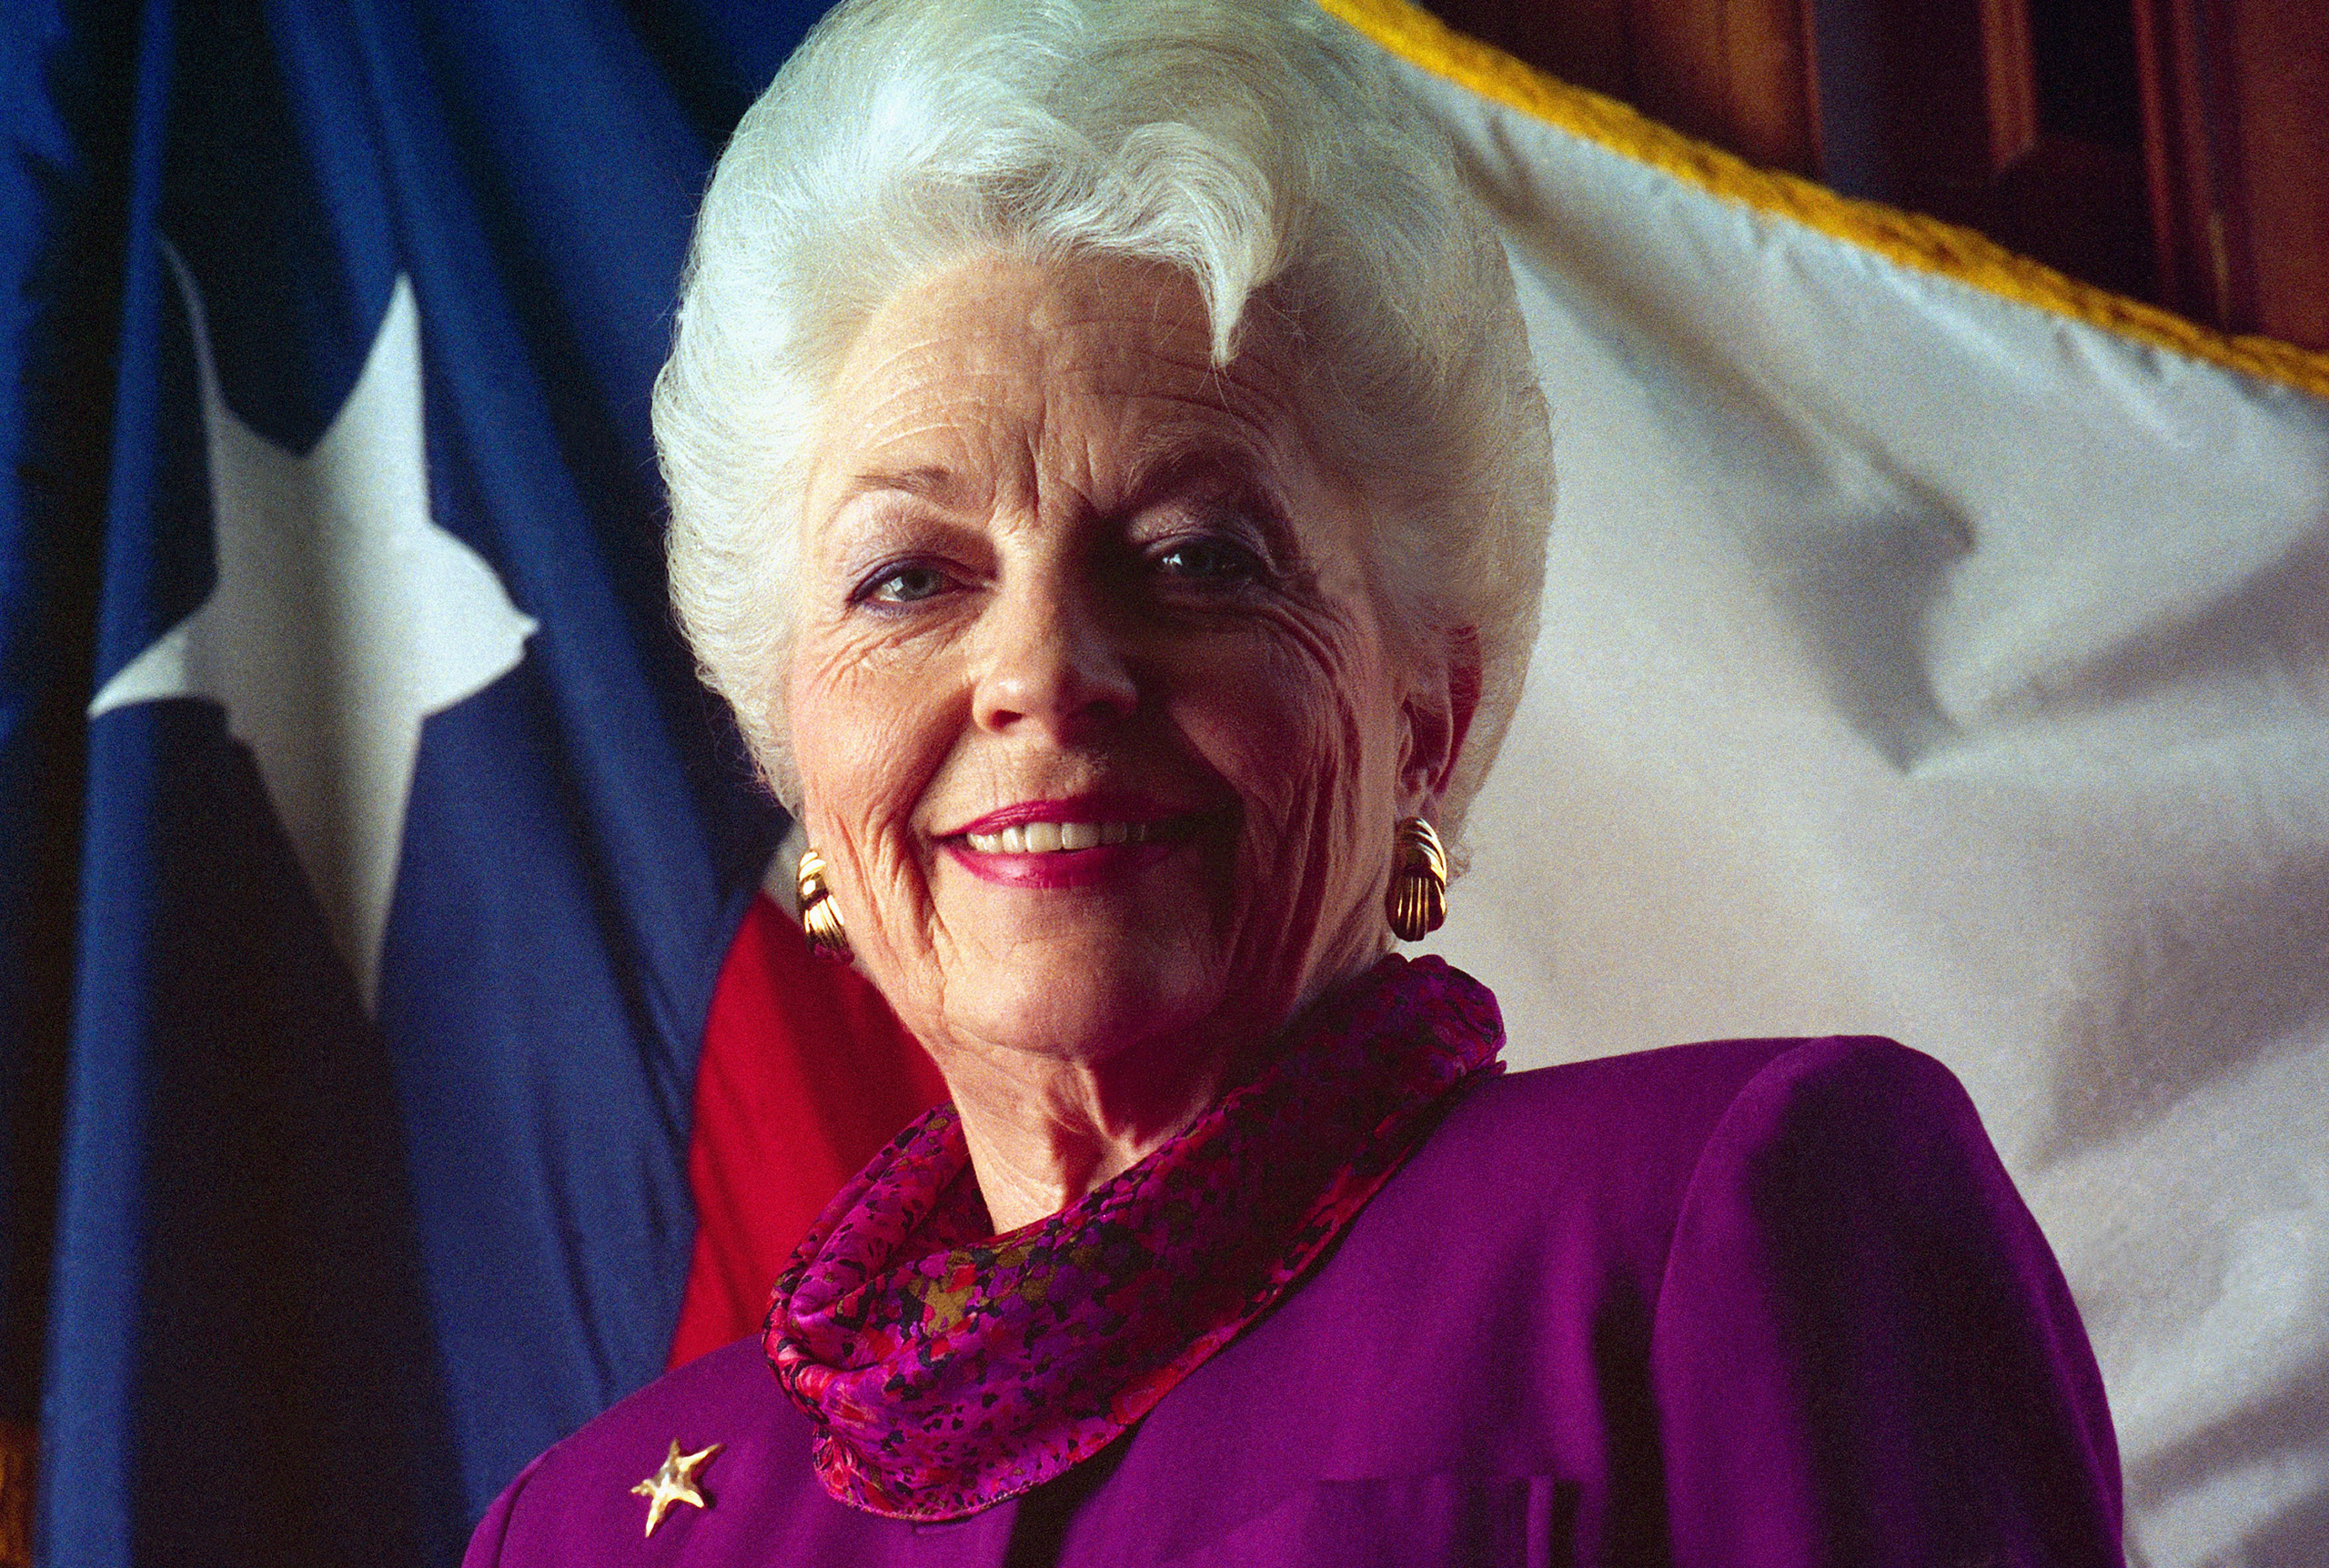 Texas governor Ann Richards at the Democratic National Convention on July 13, 1992 in New York.